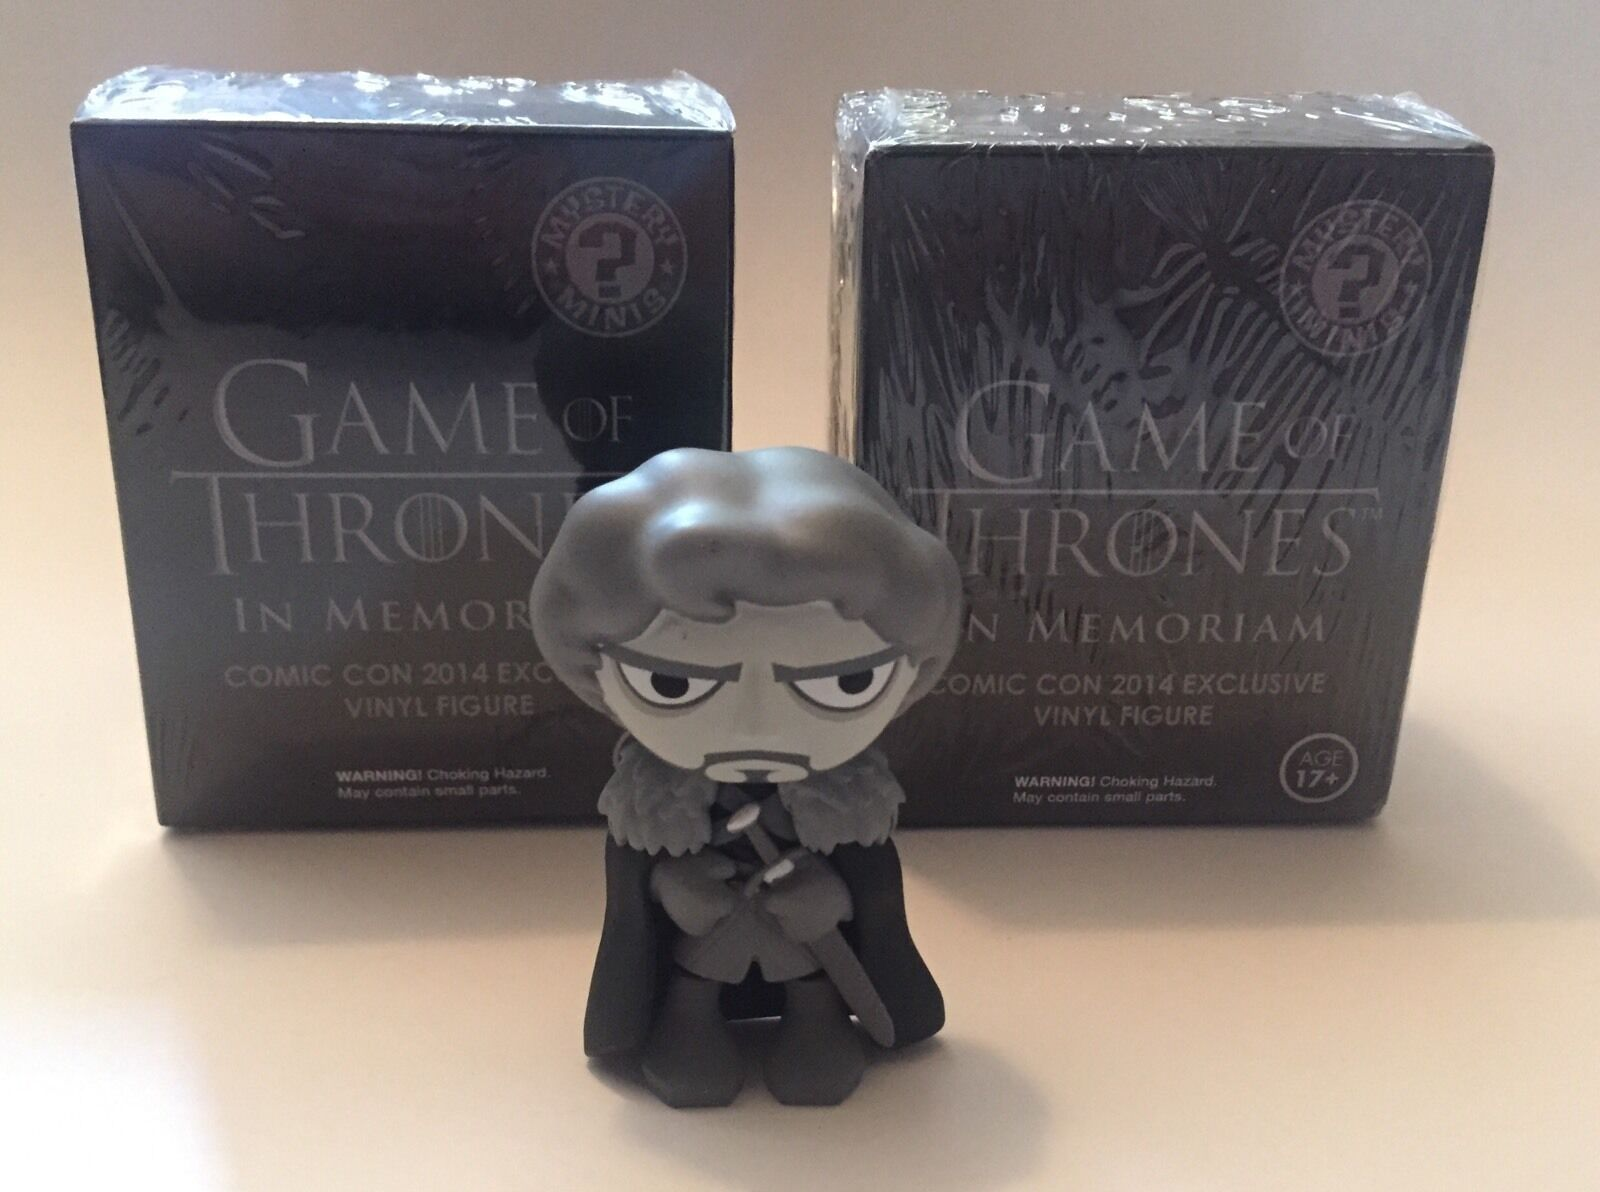 Game of Thrones In Memoriam Vinyl 2014 SDCC Exclusive: 2x NEW SEALED + ROB STARK